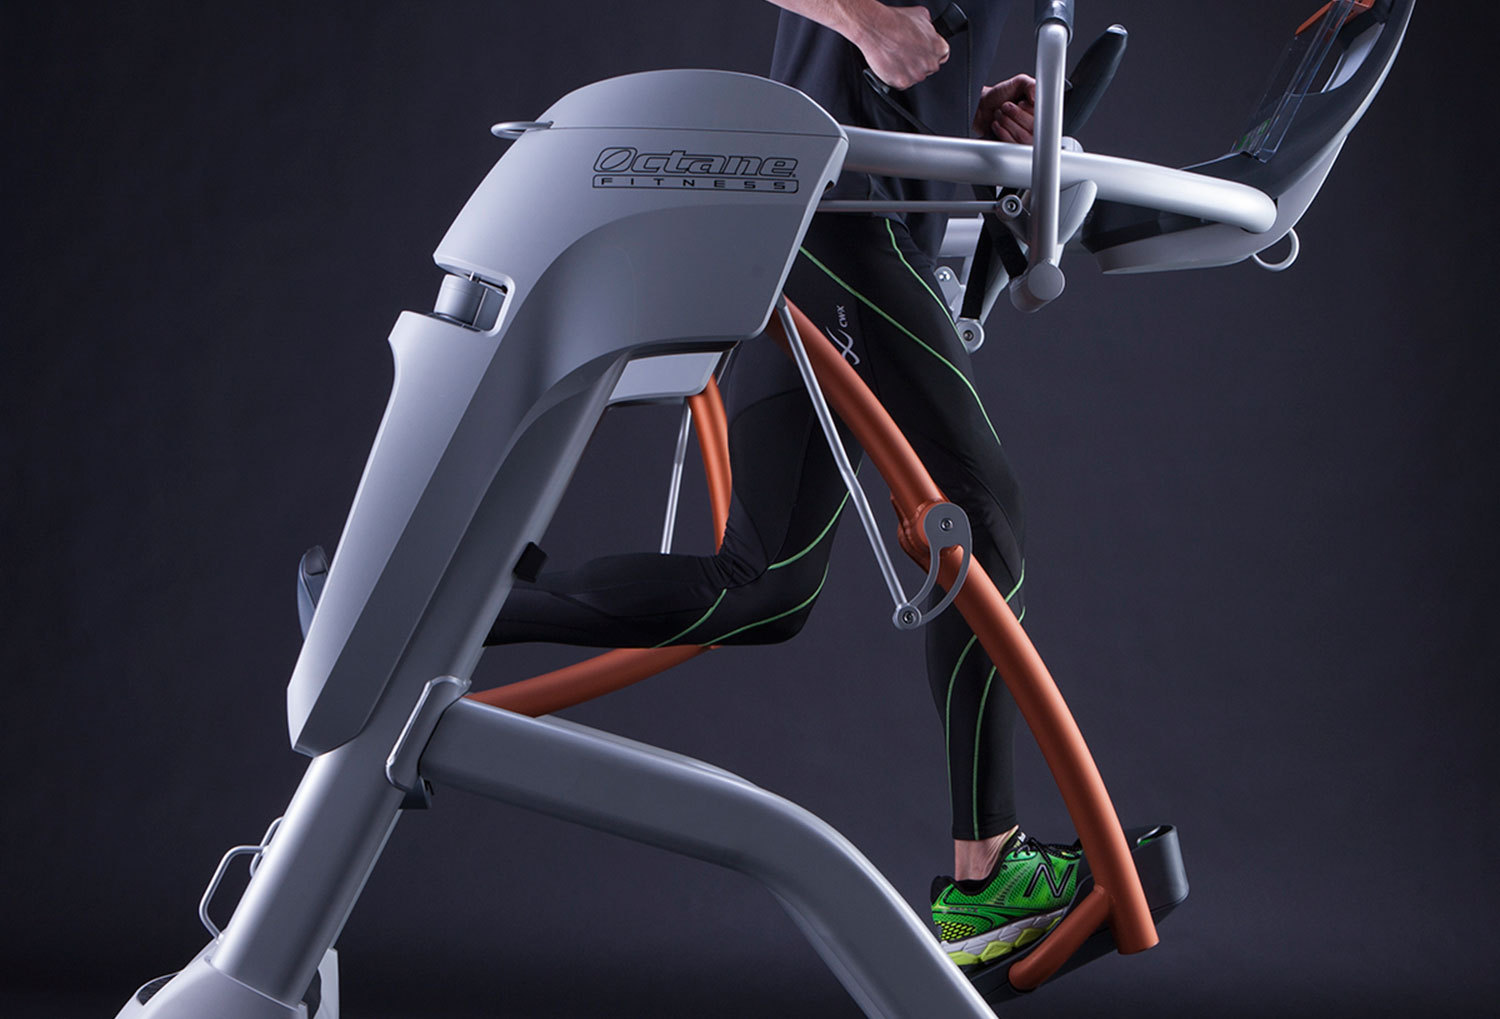 The innovative Zero Runner from Octane Fitness replicates natural running motion but eliminates stressful impact that can cause fatigue, impair form and lead to injuries. (Photo: Business Wire)